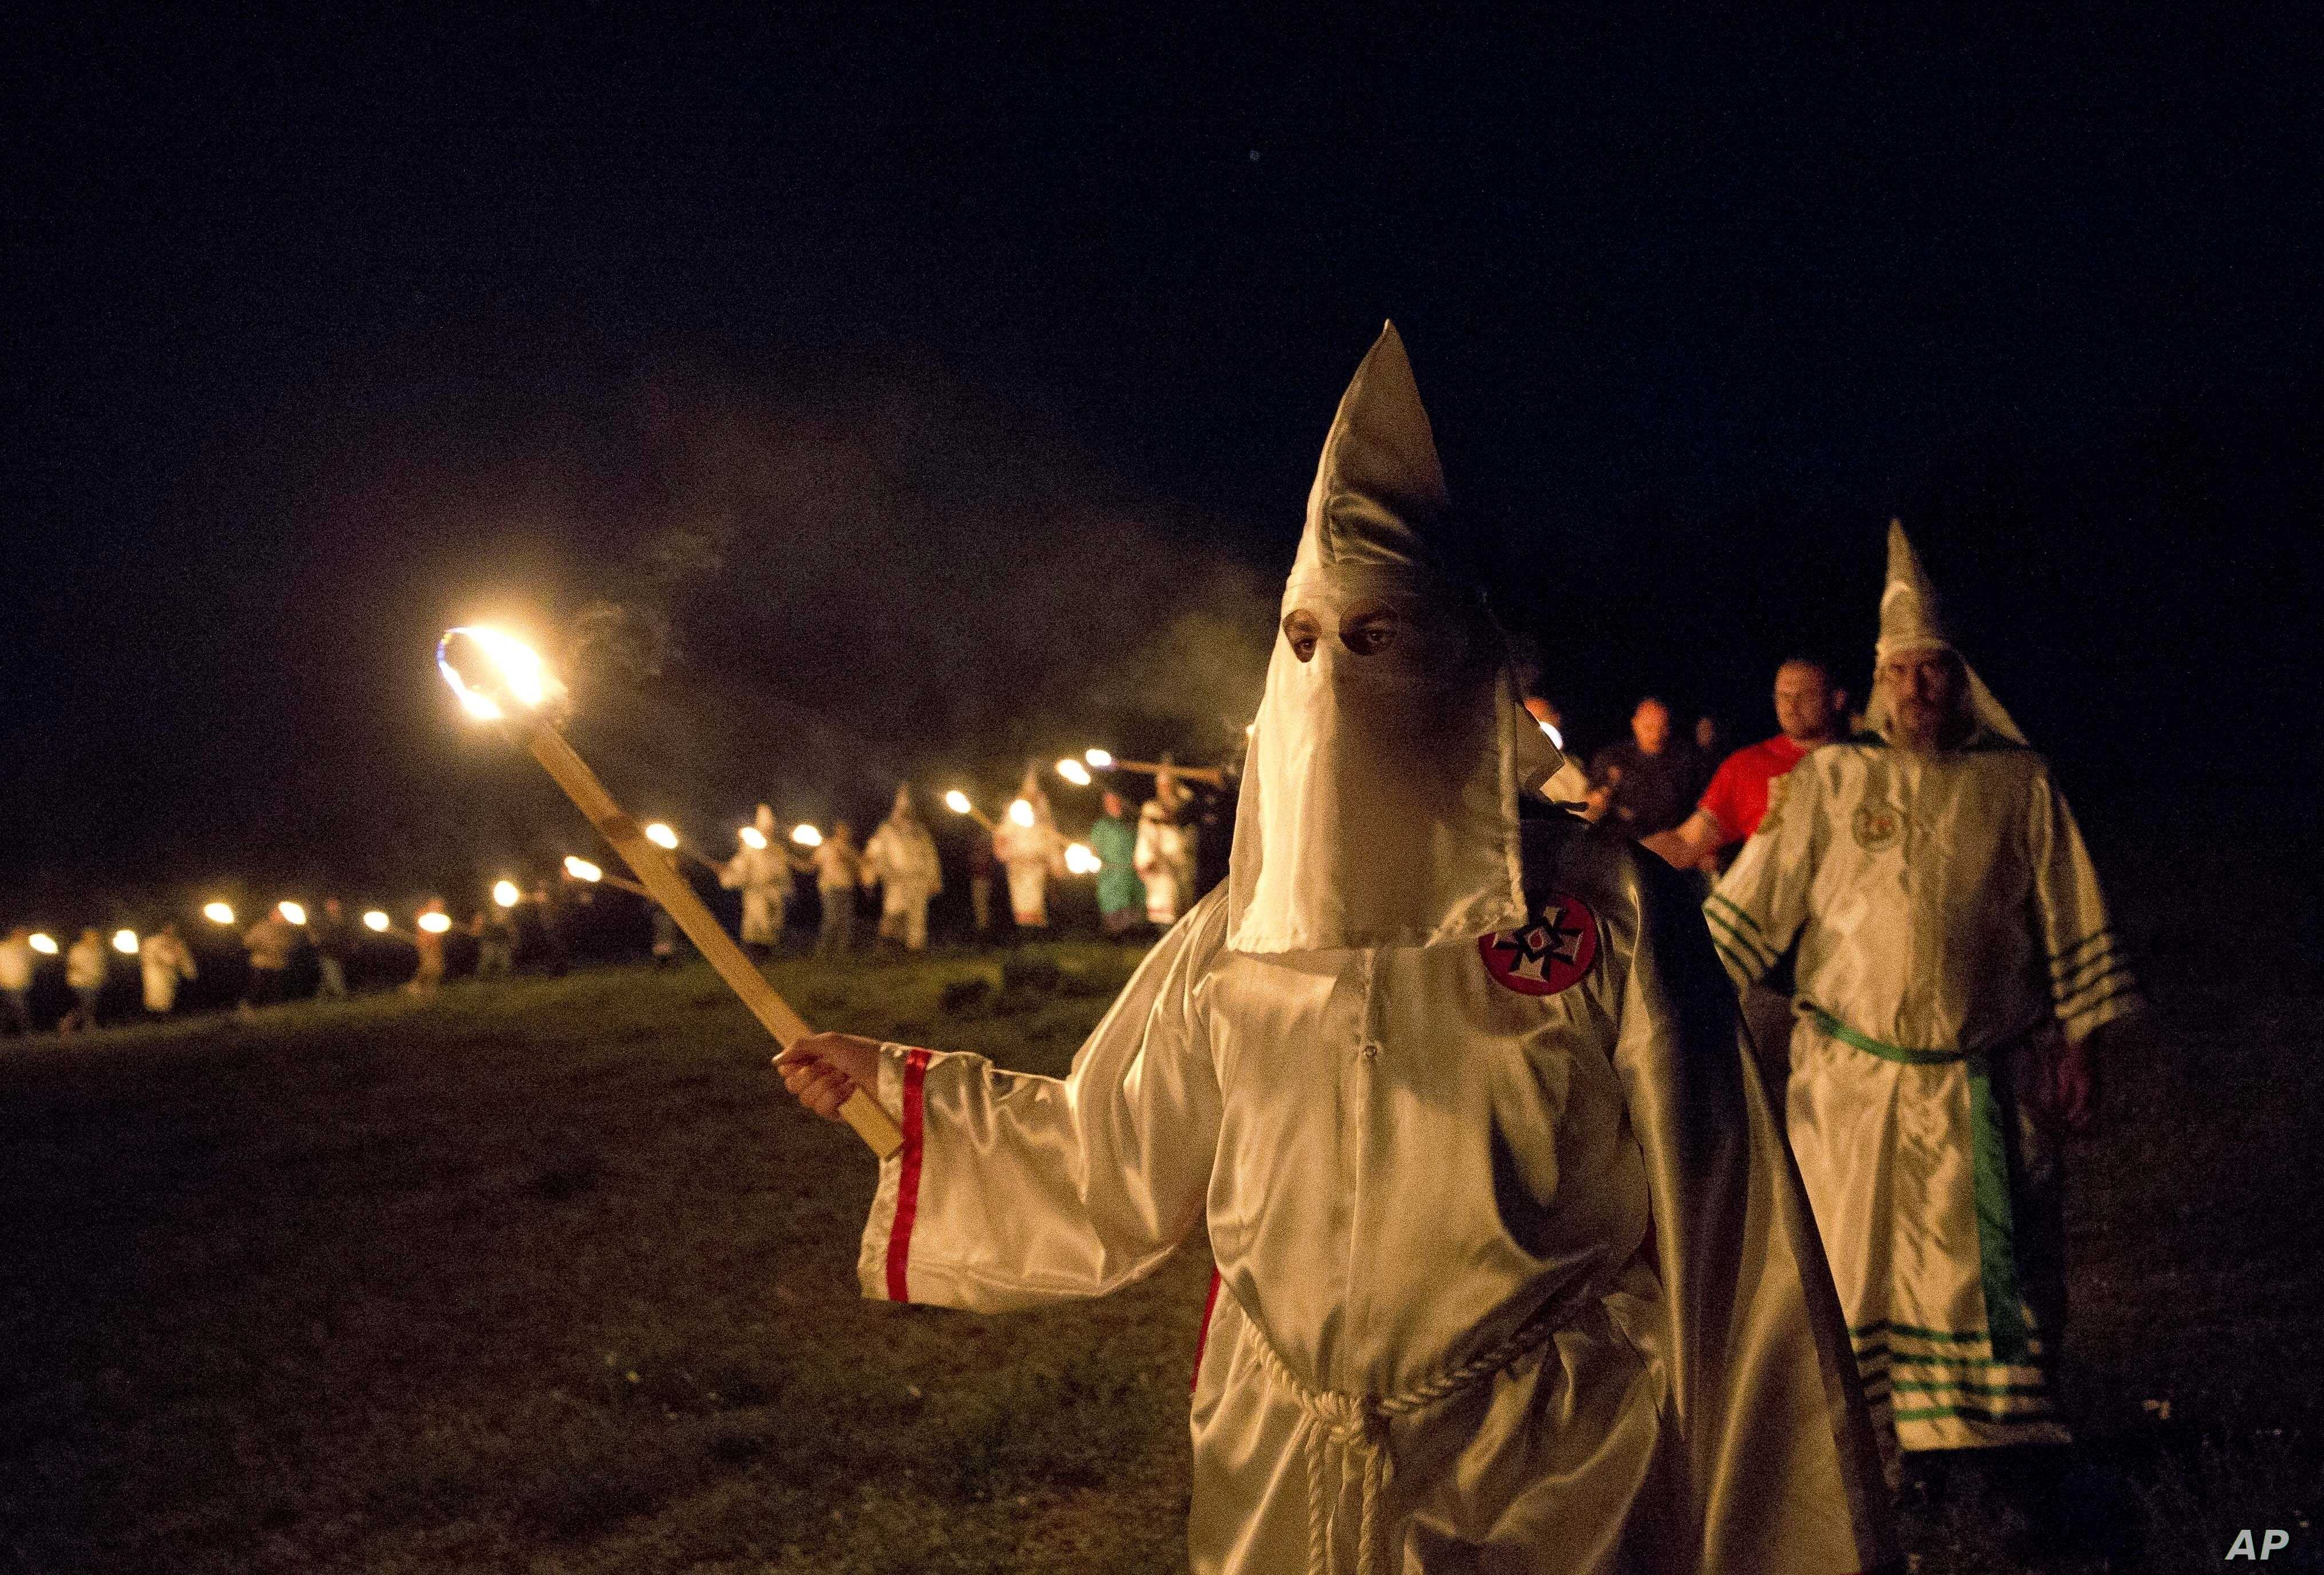 """In this Saturday, April 23, 2016 photo, members of the Ku Klux Klan participate in cross burnings after a """"white pride"""" rally in rural Paulding County near Cedar Town, Ga. Born in the ashes of the smoldering South after the Civil War, the KKK died an..."""